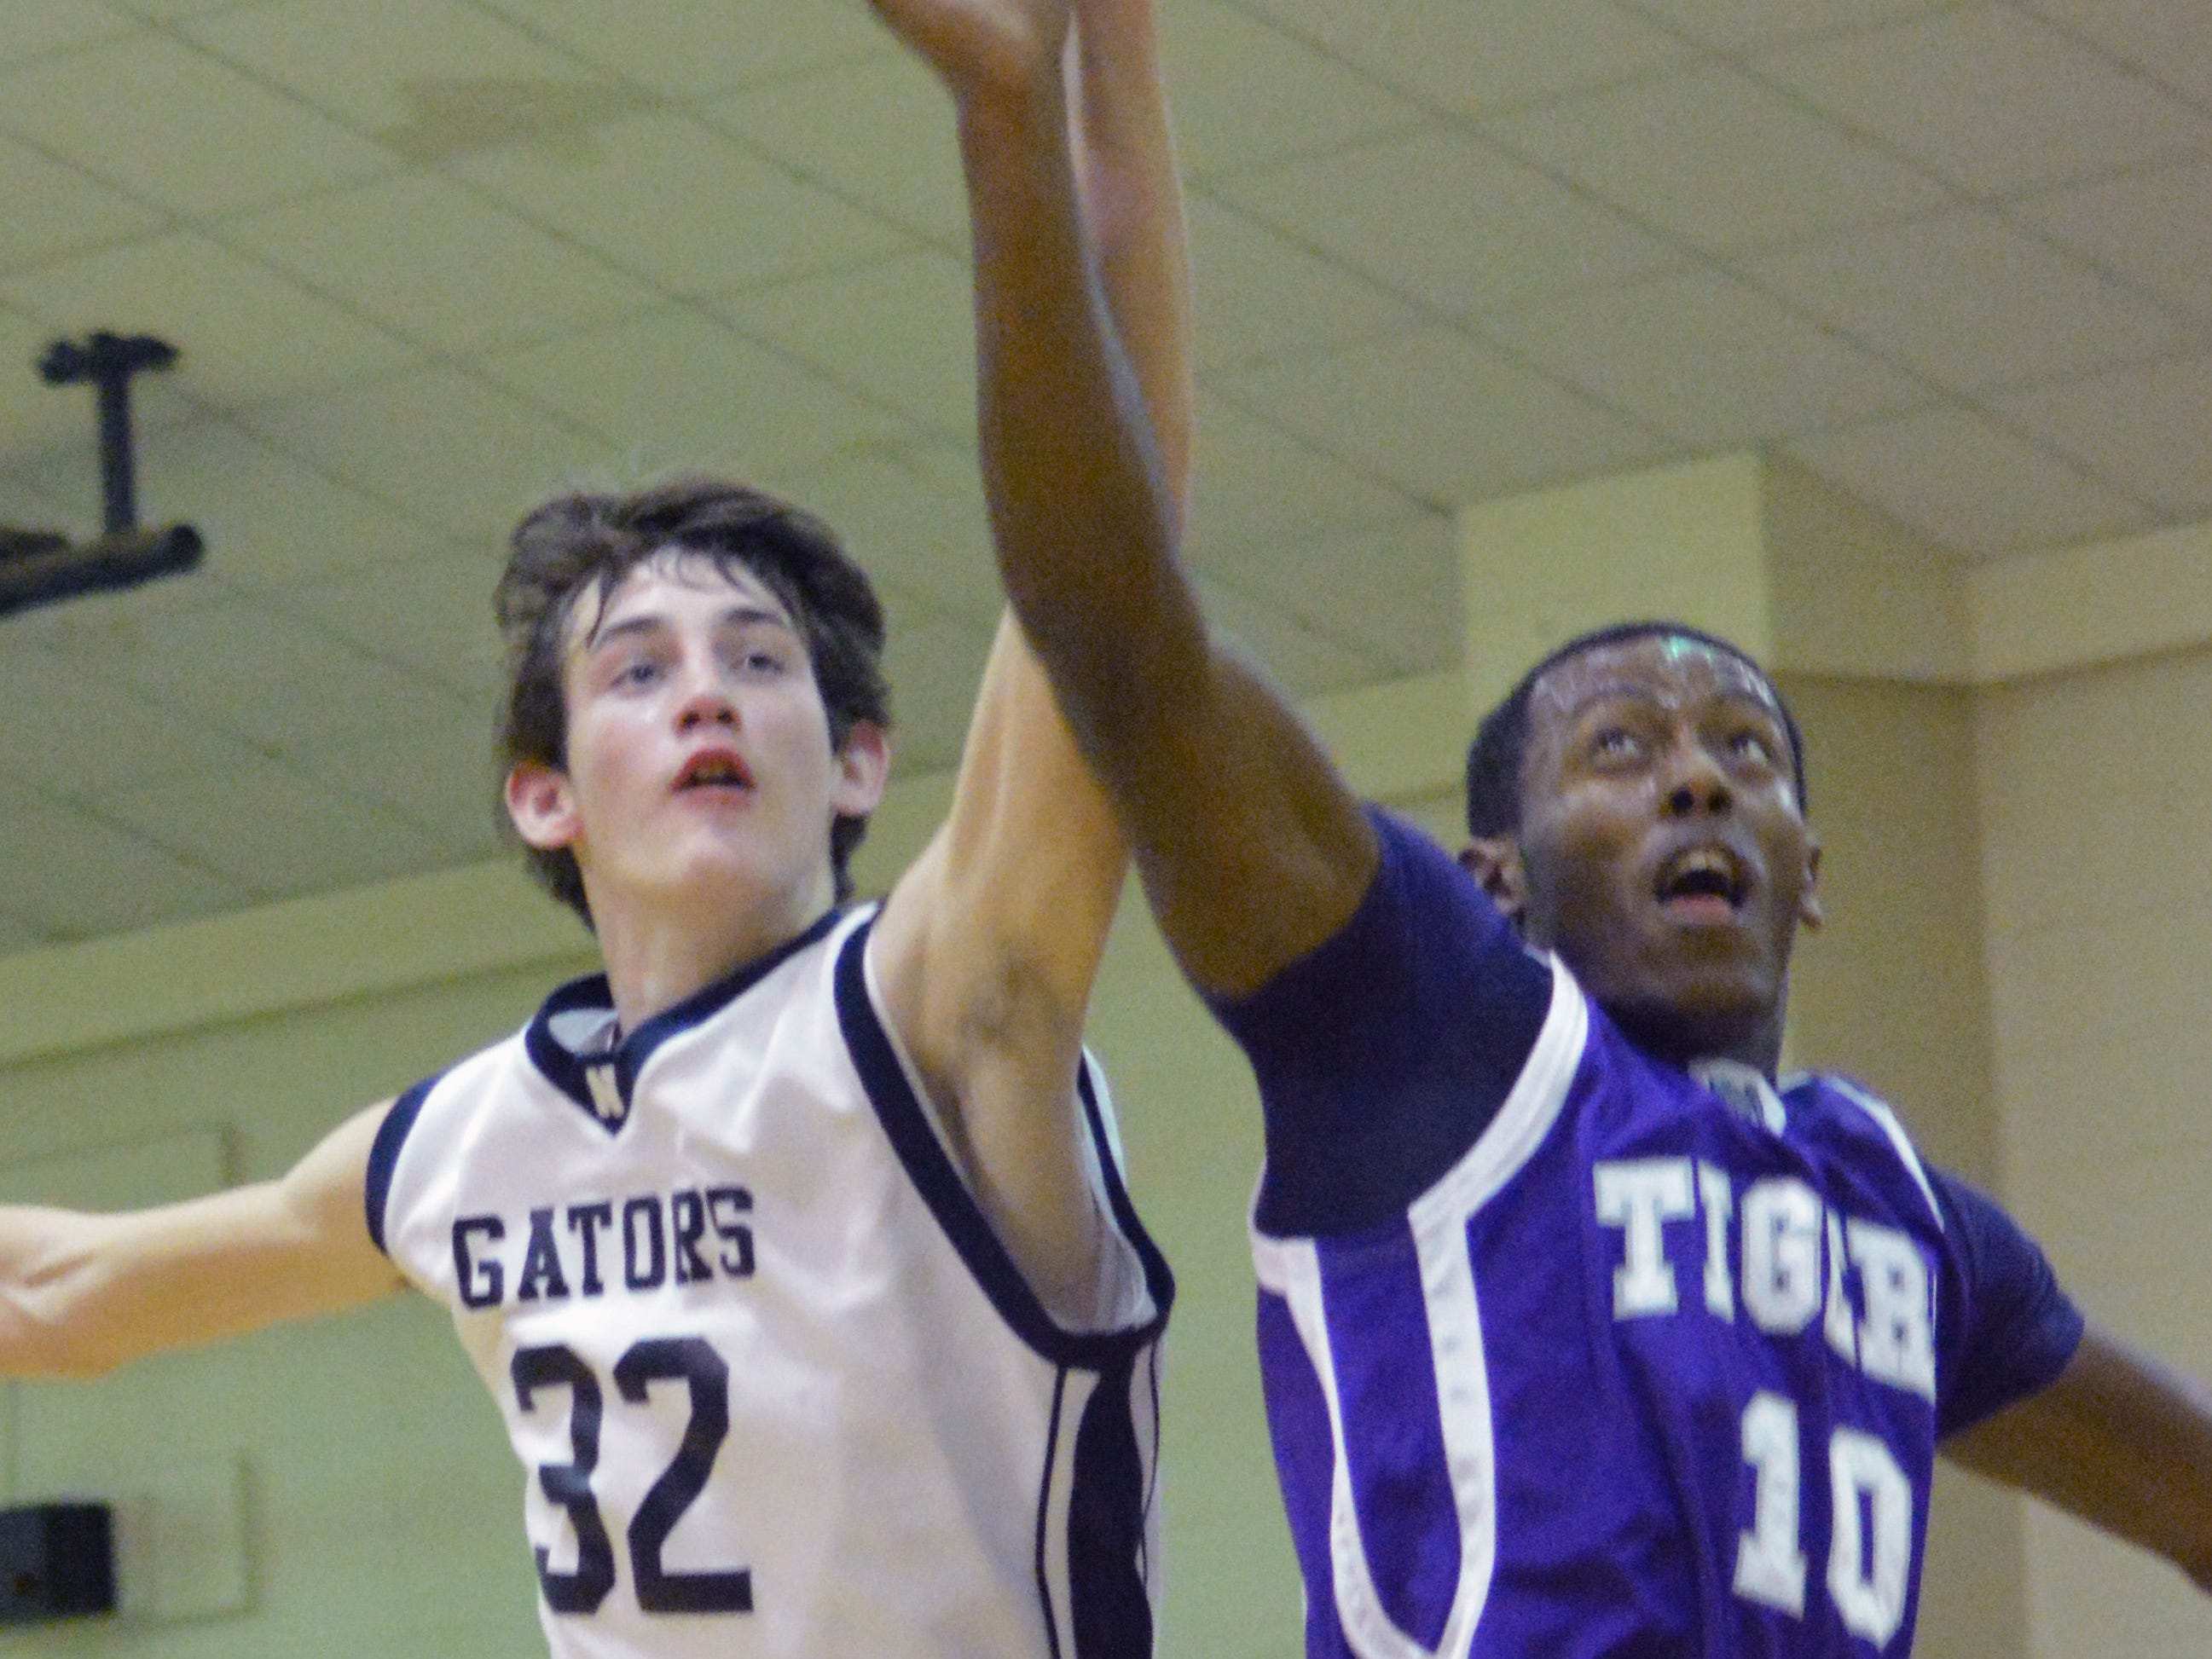 Northwood's Connor Grigg (32, left) and Montgomery's Chris Sykes (10, right) go after a rebound Friday.